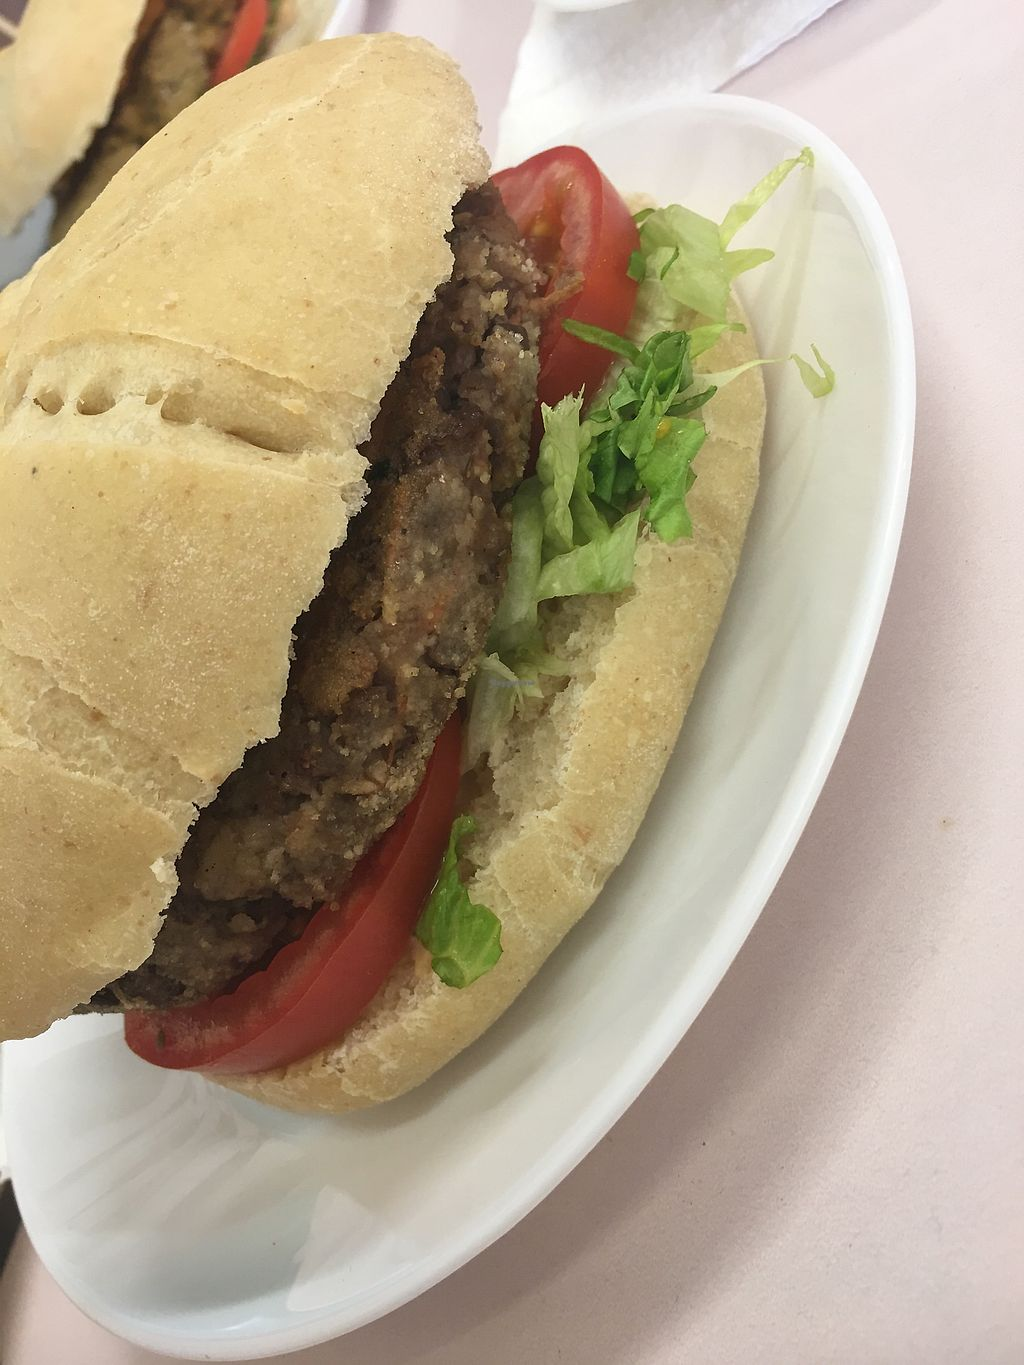 """Photo of K-Vegan  by <a href=""""/members/profile/kiiabby"""">kiiabby</a> <br/>Lentil burger  <br/> March 27, 2018  - <a href='/contact/abuse/image/52654/376804'>Report</a>"""